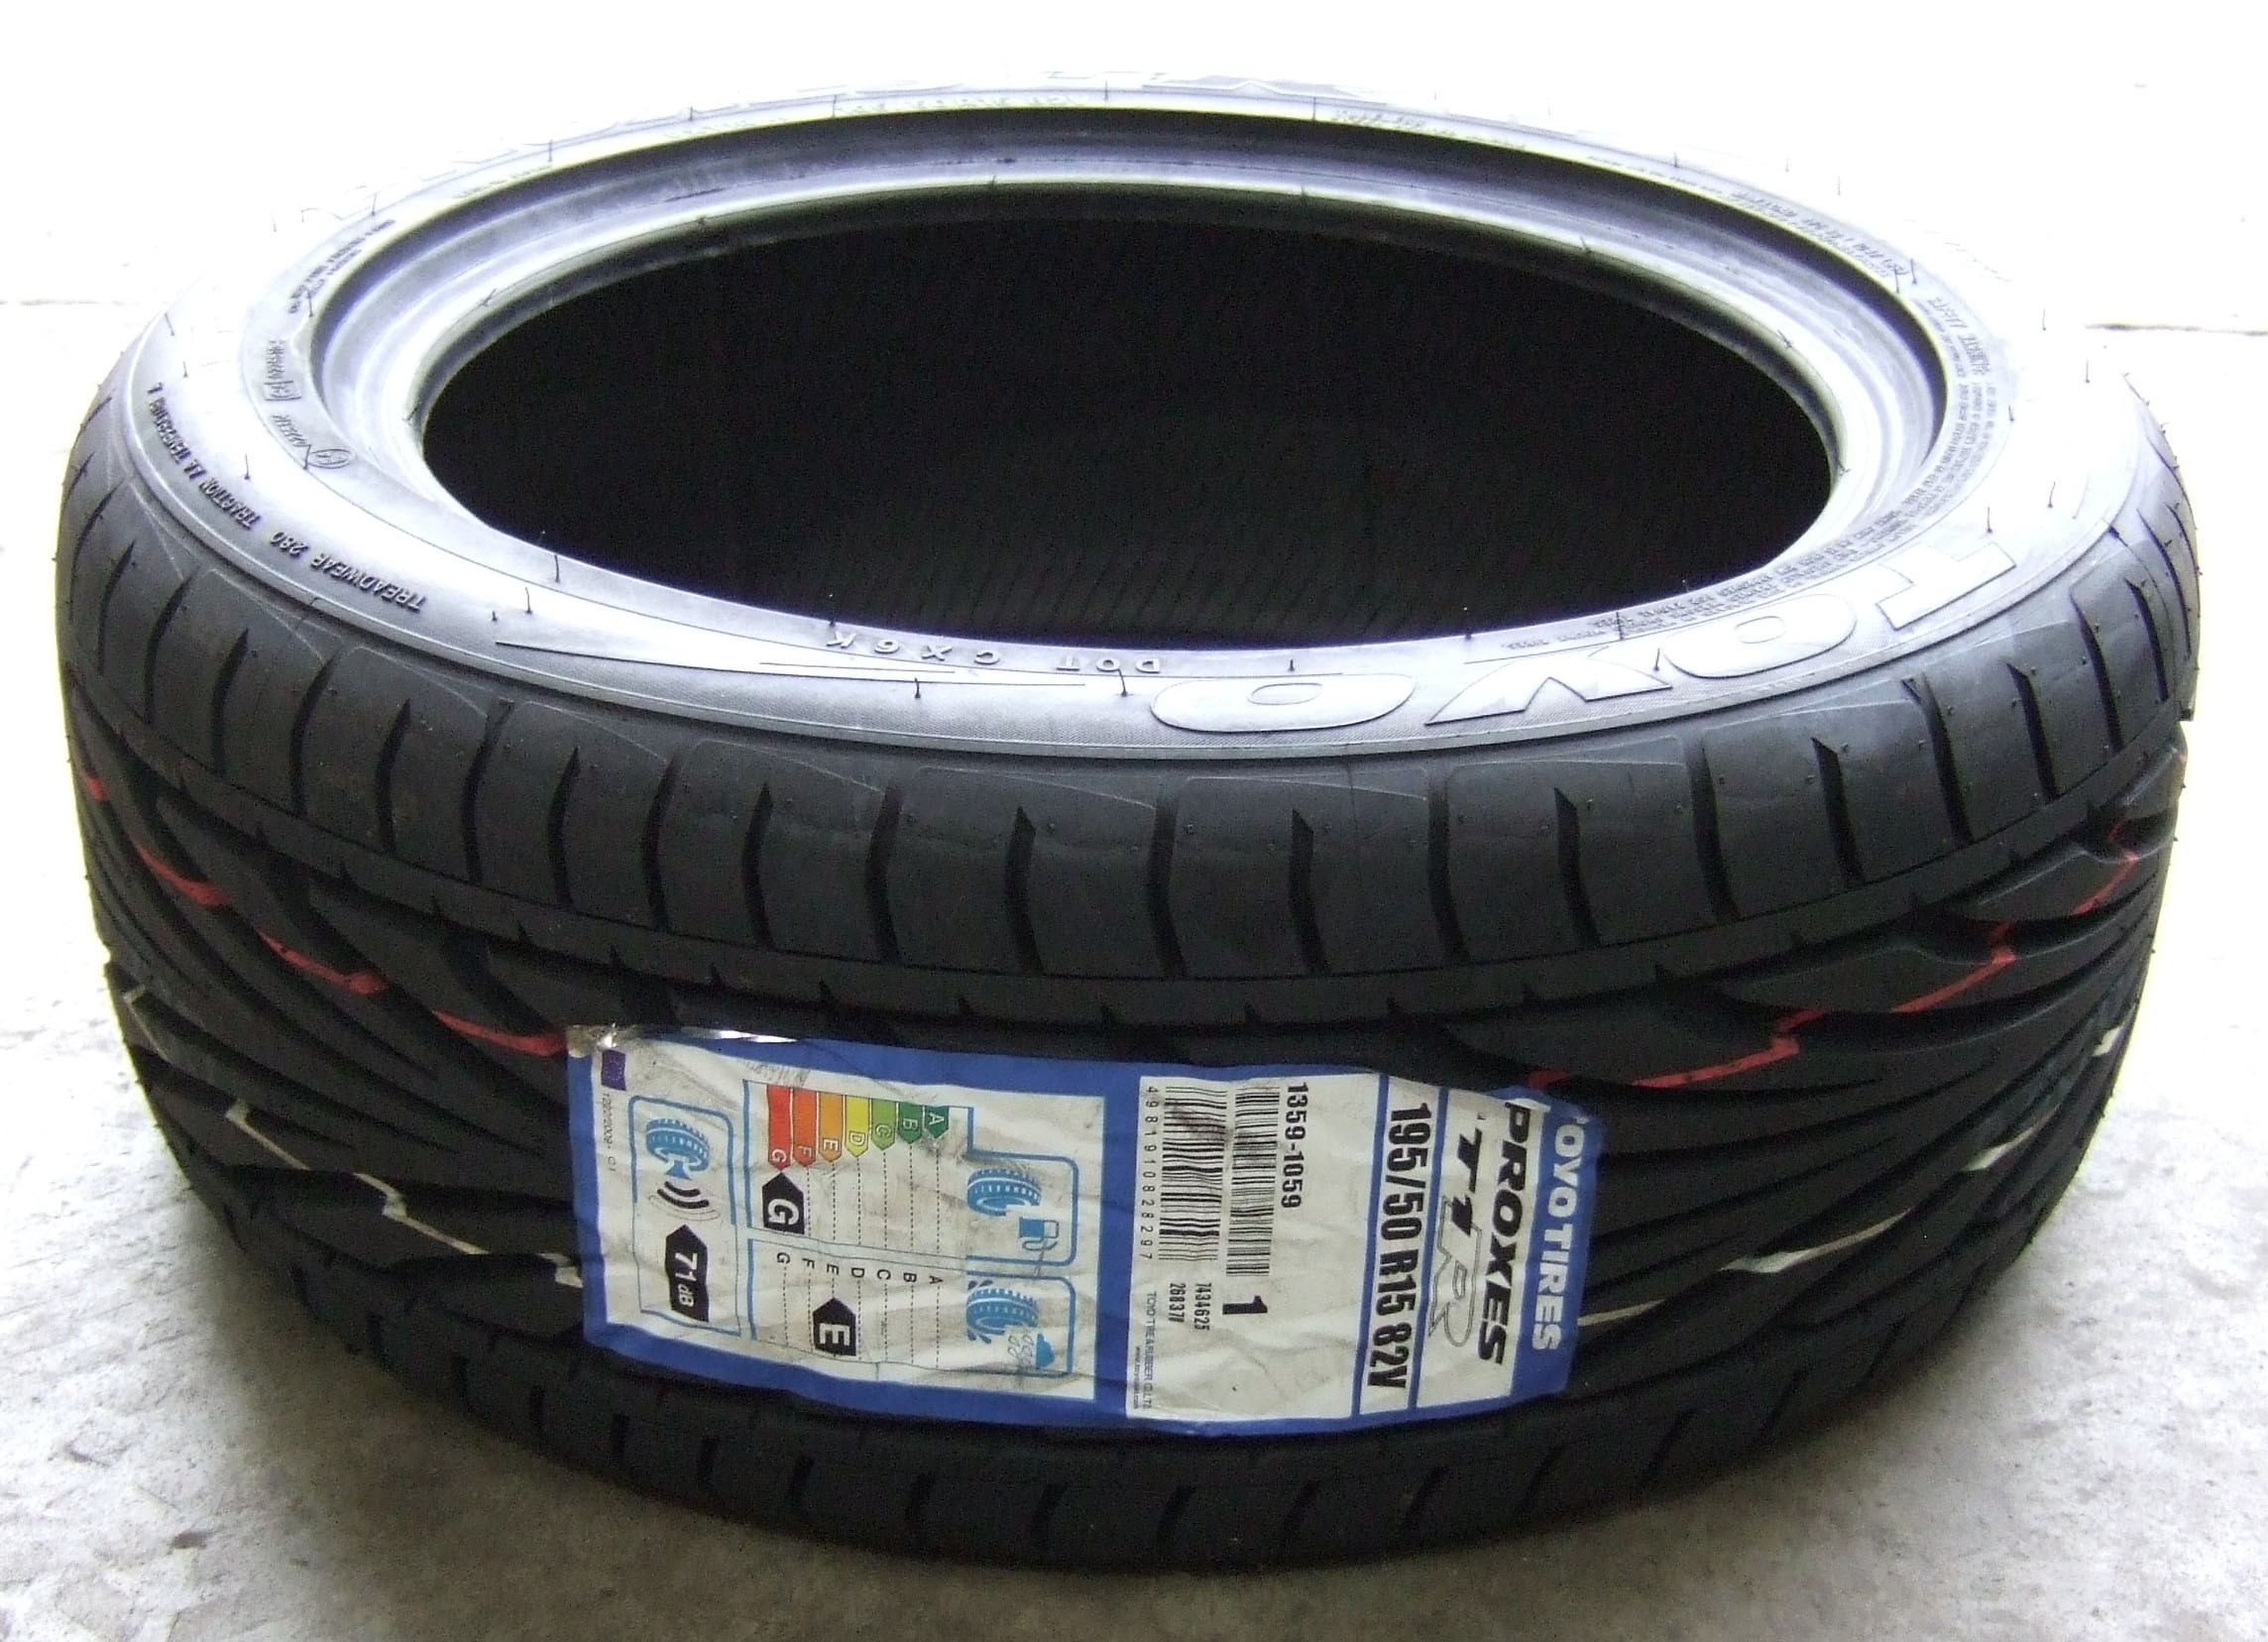 195 50 15 toyo proxes t1r tyres 1955015 tyres 195 50 15 x1 ebay. Black Bedroom Furniture Sets. Home Design Ideas